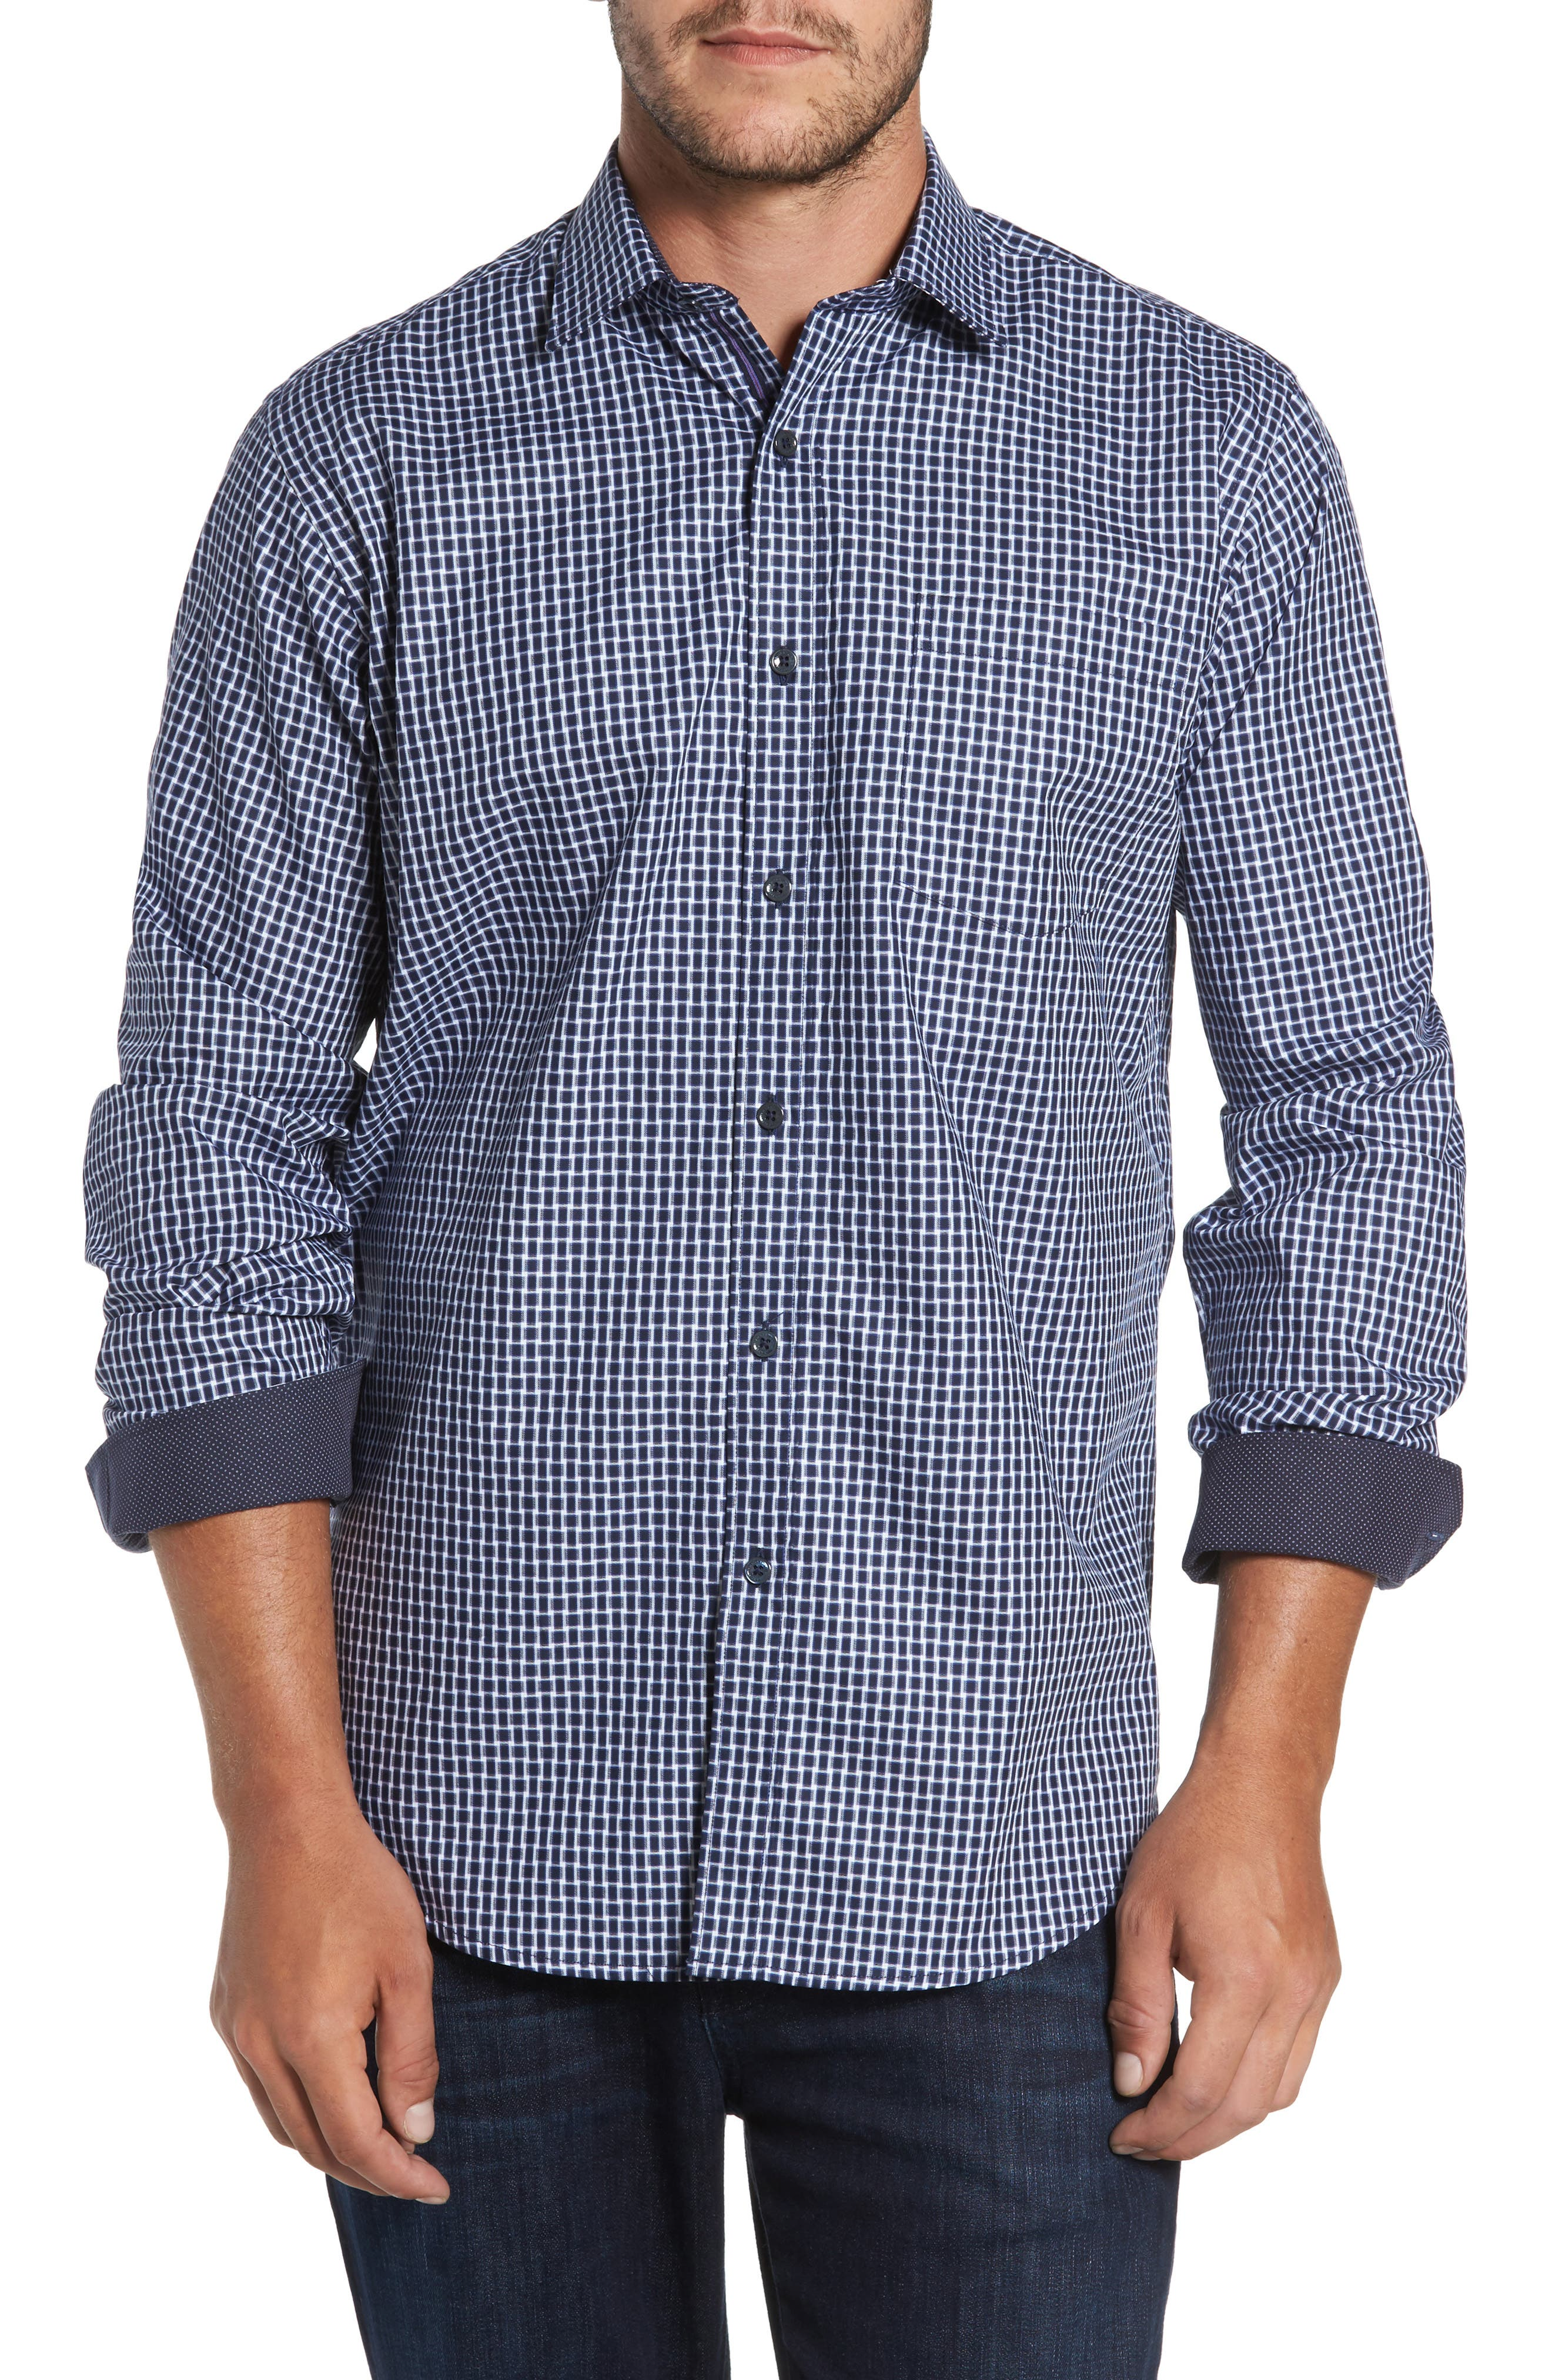 Classic Fit Geo Patterned Sport Shirt,                             Main thumbnail 1, color,                             411